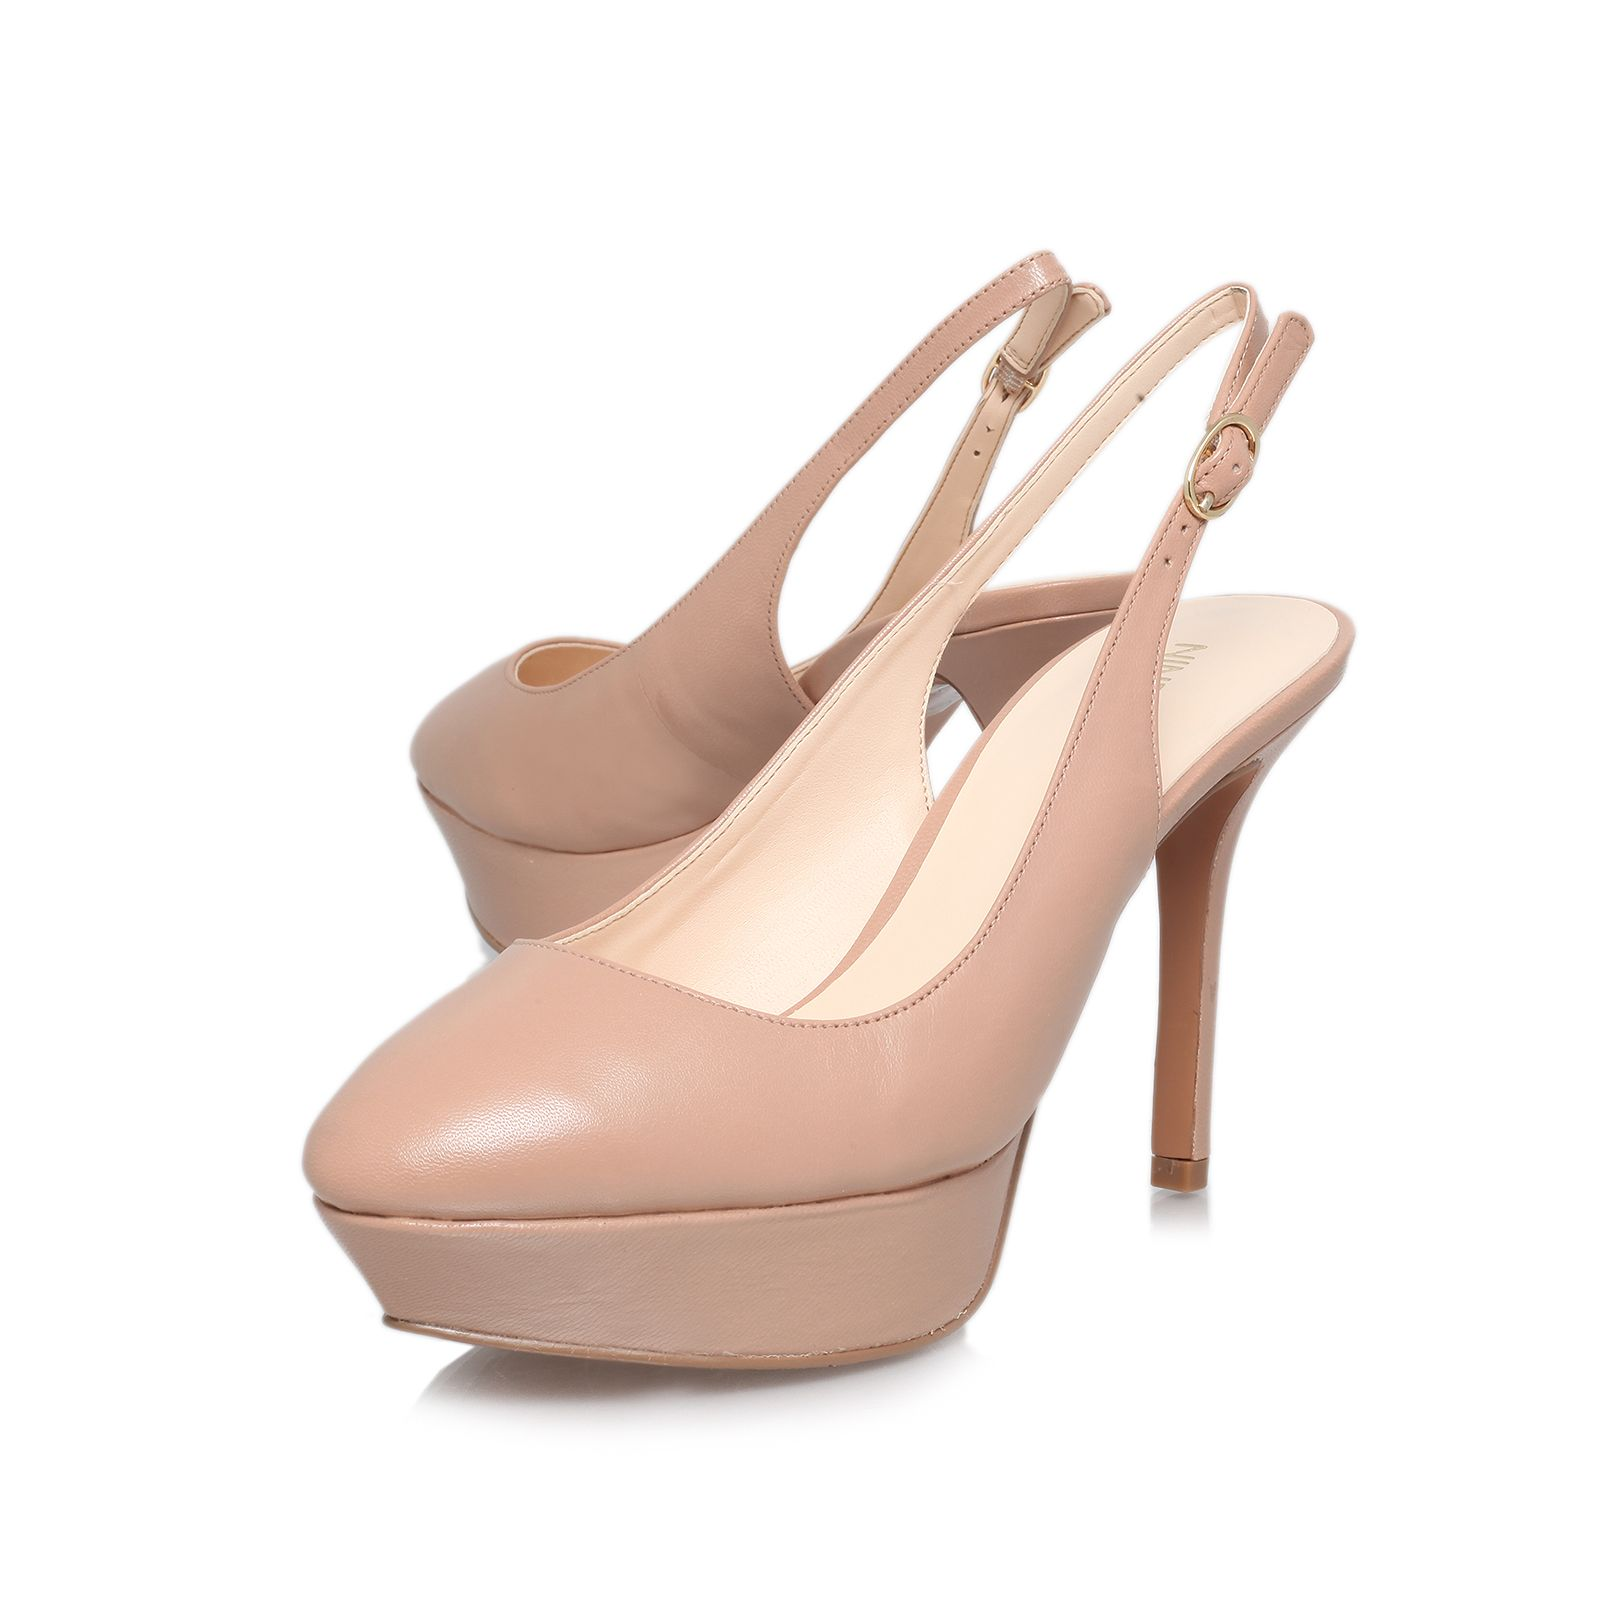 Cozelle high heeled court shoes